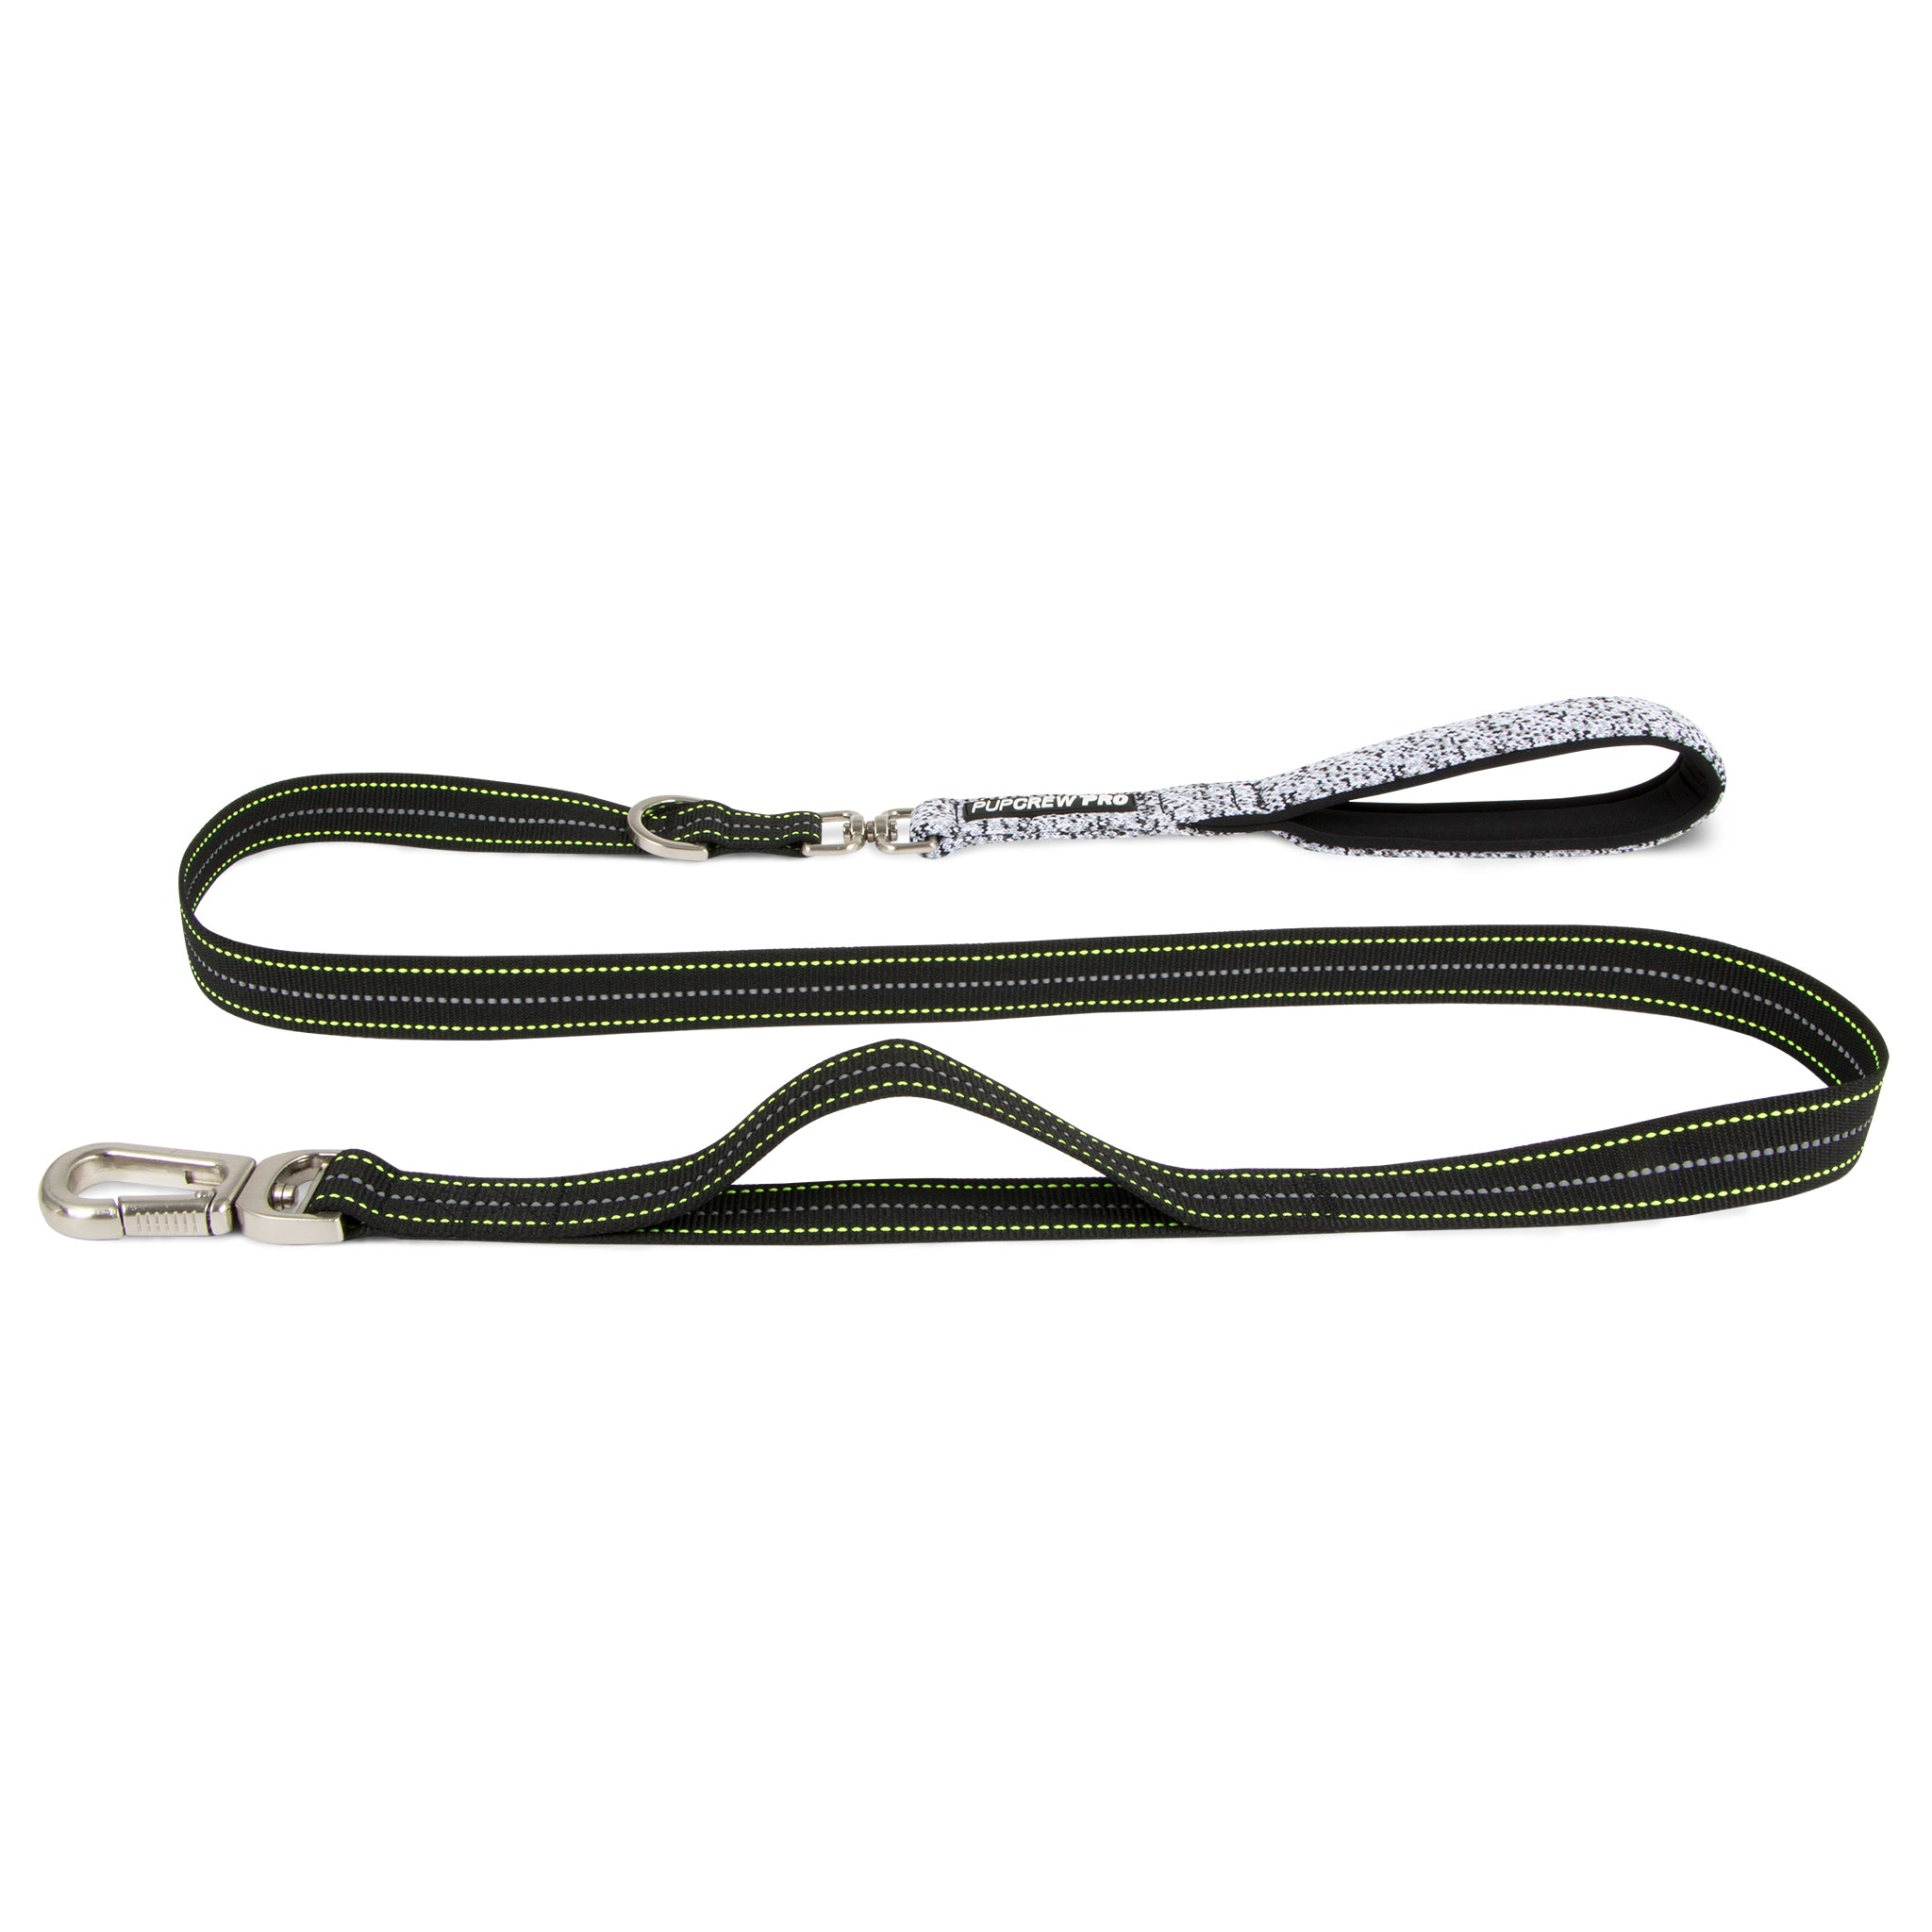 Pathfinder Leash